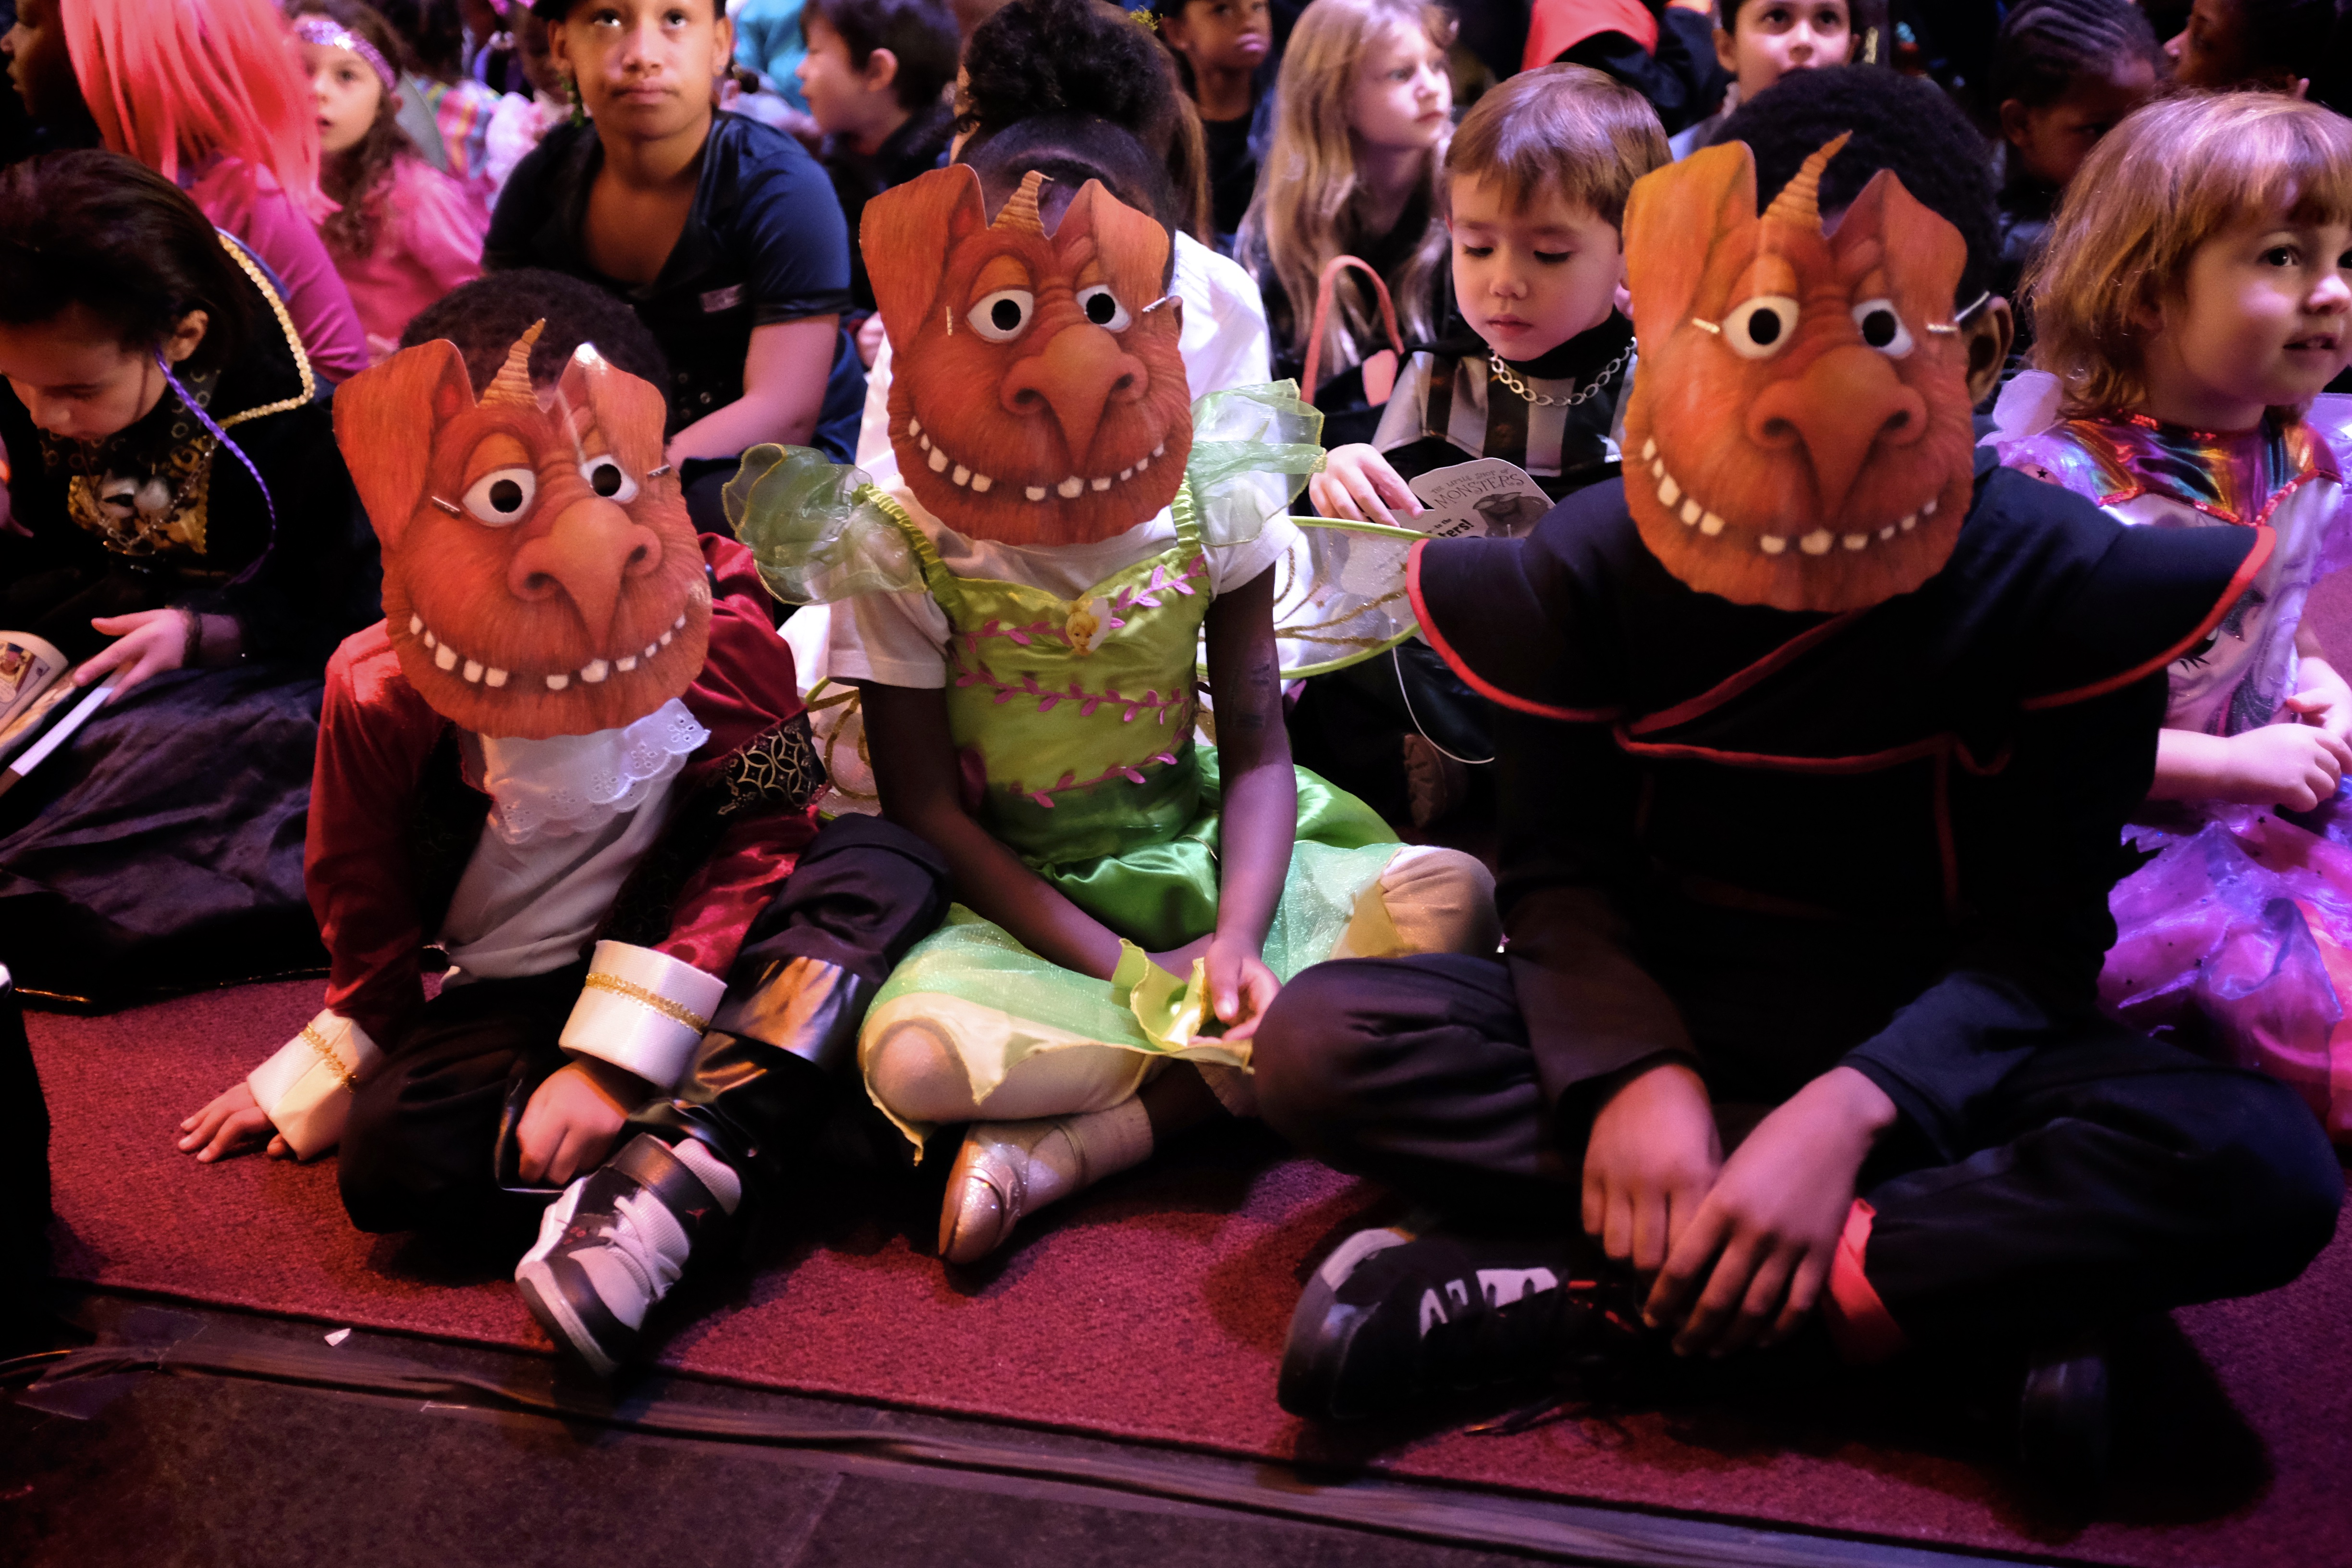 Halloween Fun at Lincoln Center with the Annual LC Kids Trick-or-Treat Event